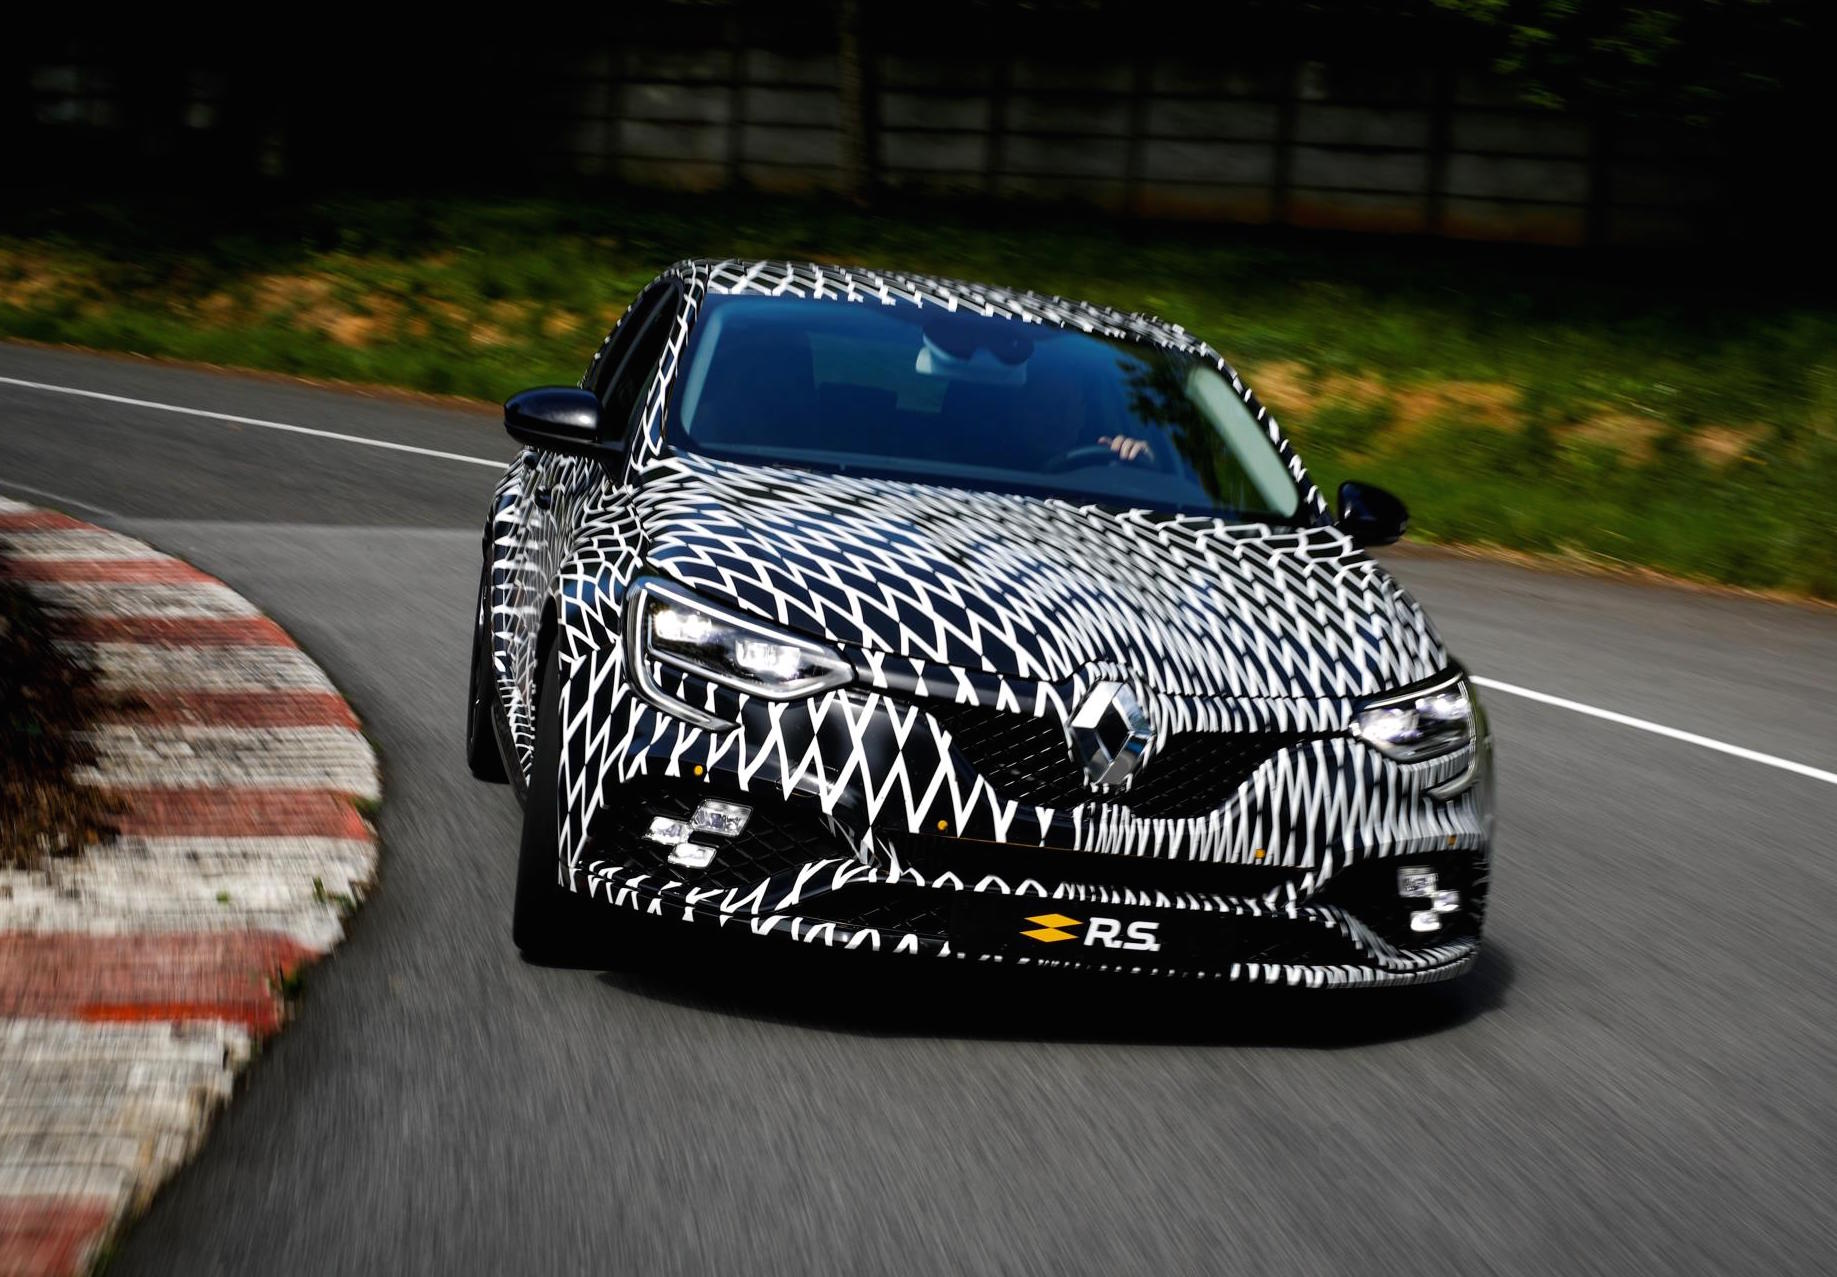 Renault Megane RS to debut at Monaco F1 GP